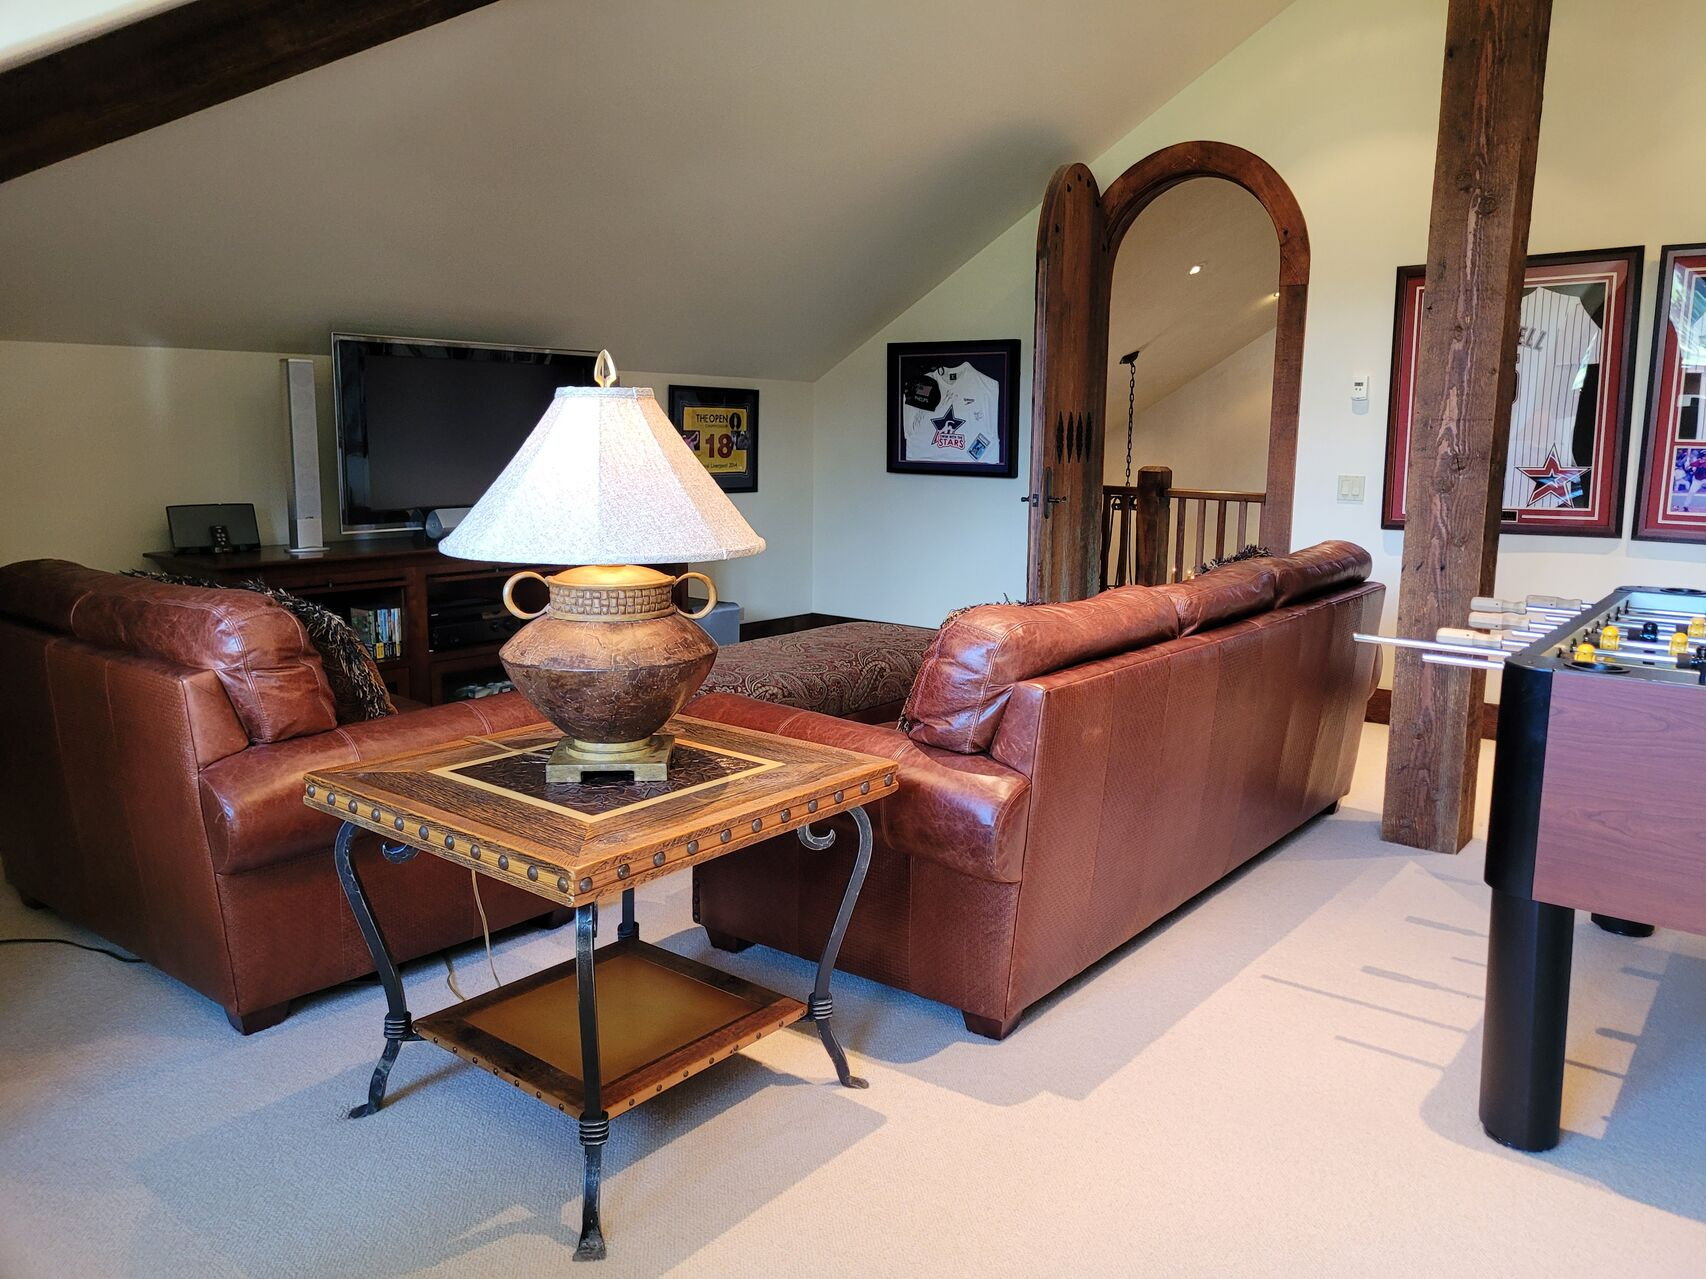 Living room with leather furniture and wood accents